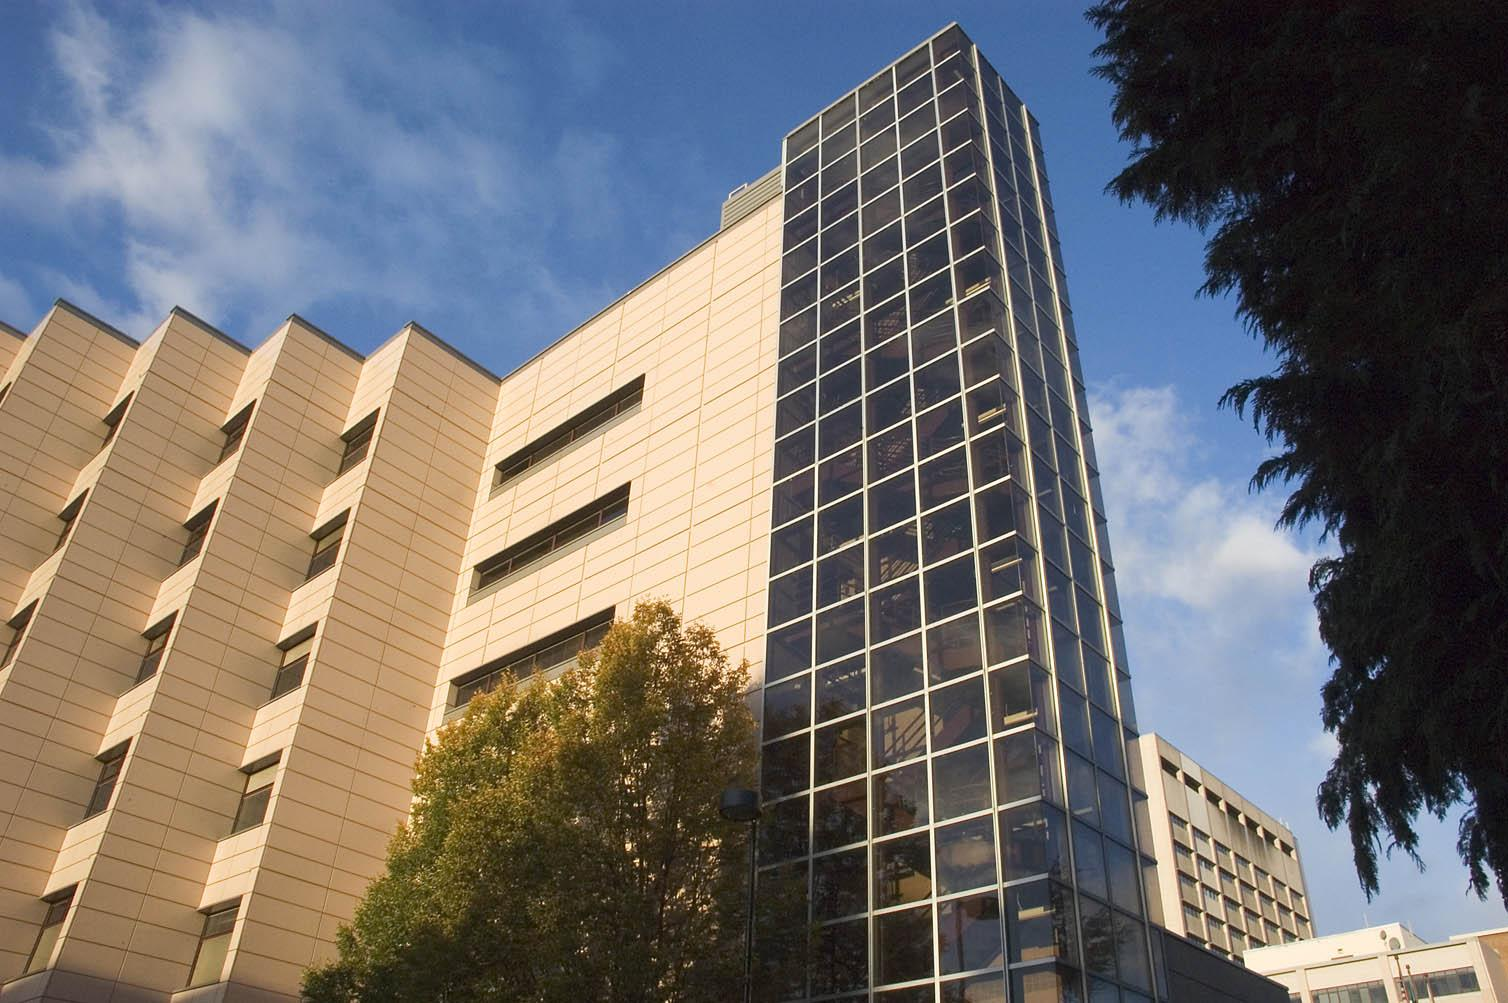 The University of Washington Medical Center (UWMC)